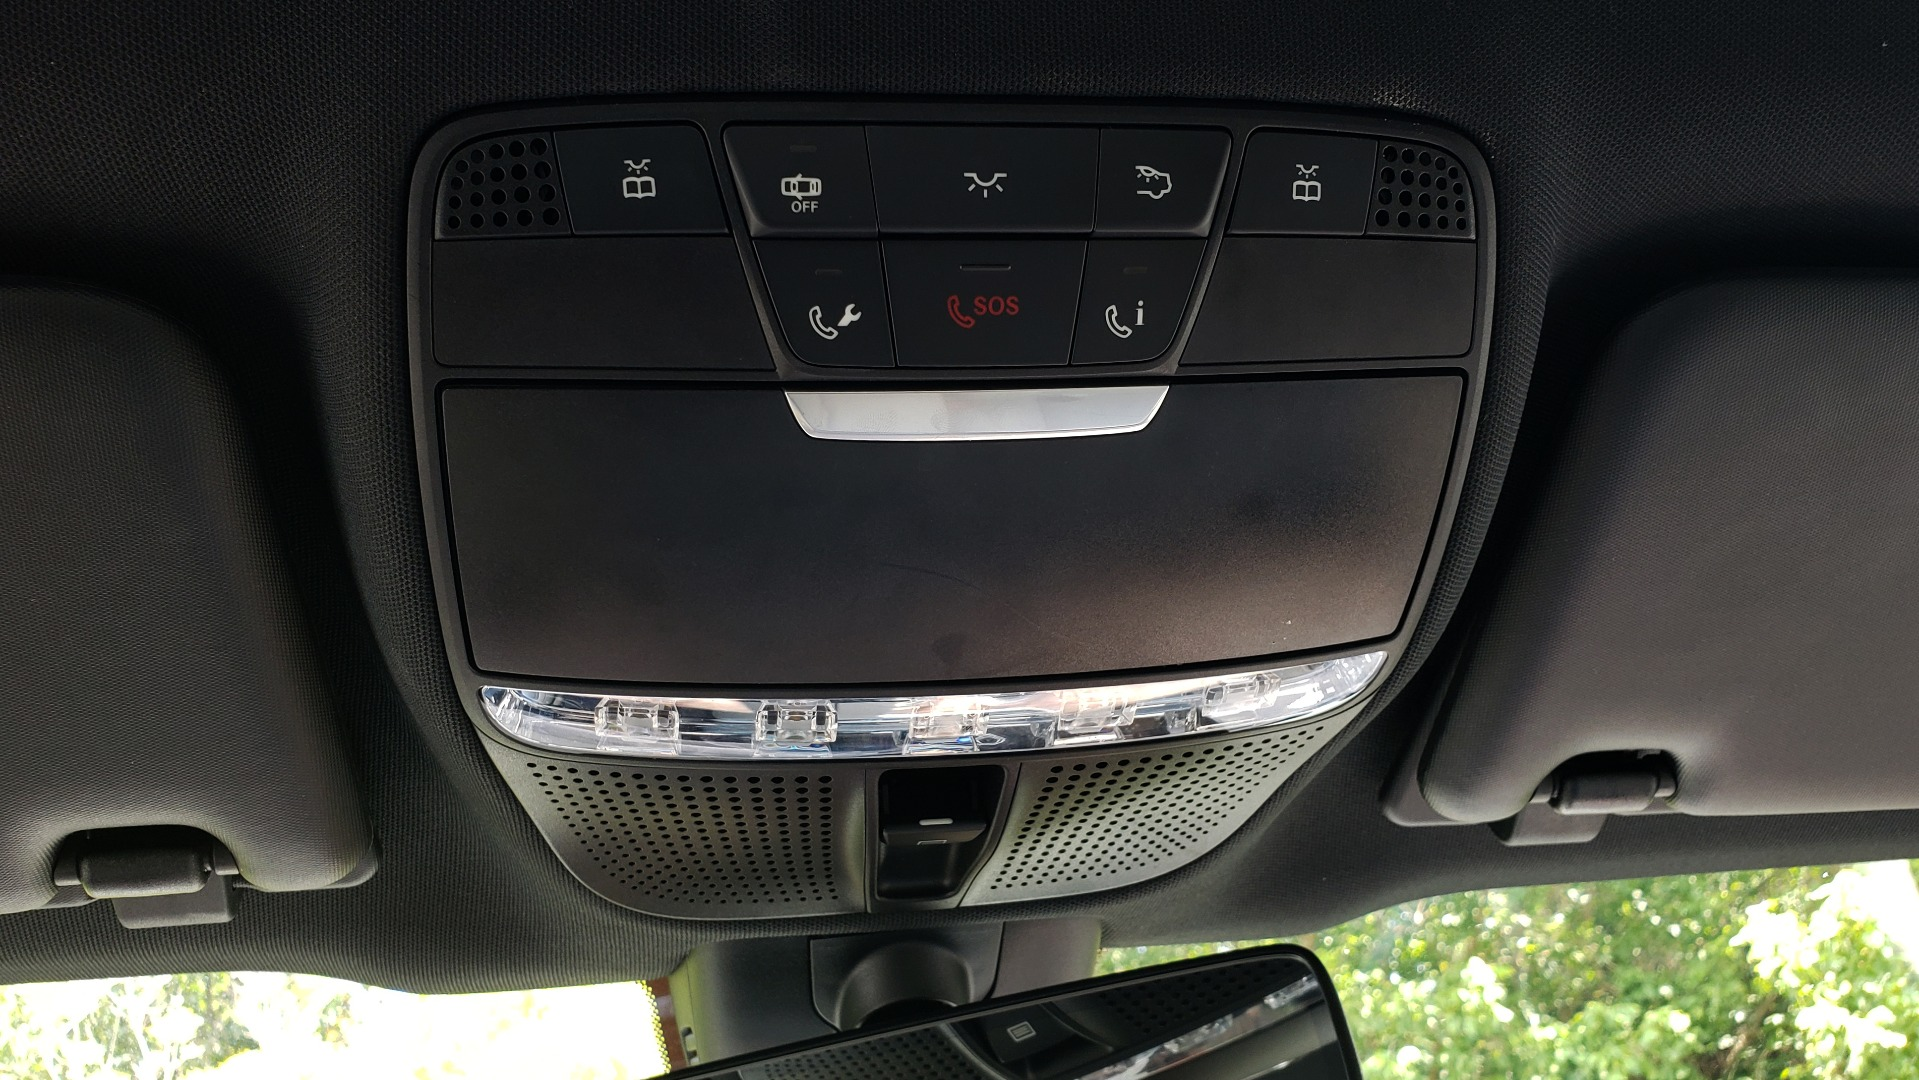 Used 2017 Mercedes-Benz E-CLASS E 300 PREMIUM / SPORT / NAV / SUNROOF / HTD STS / BSM / REARVIEW for sale $27,995 at Formula Imports in Charlotte NC 28227 51